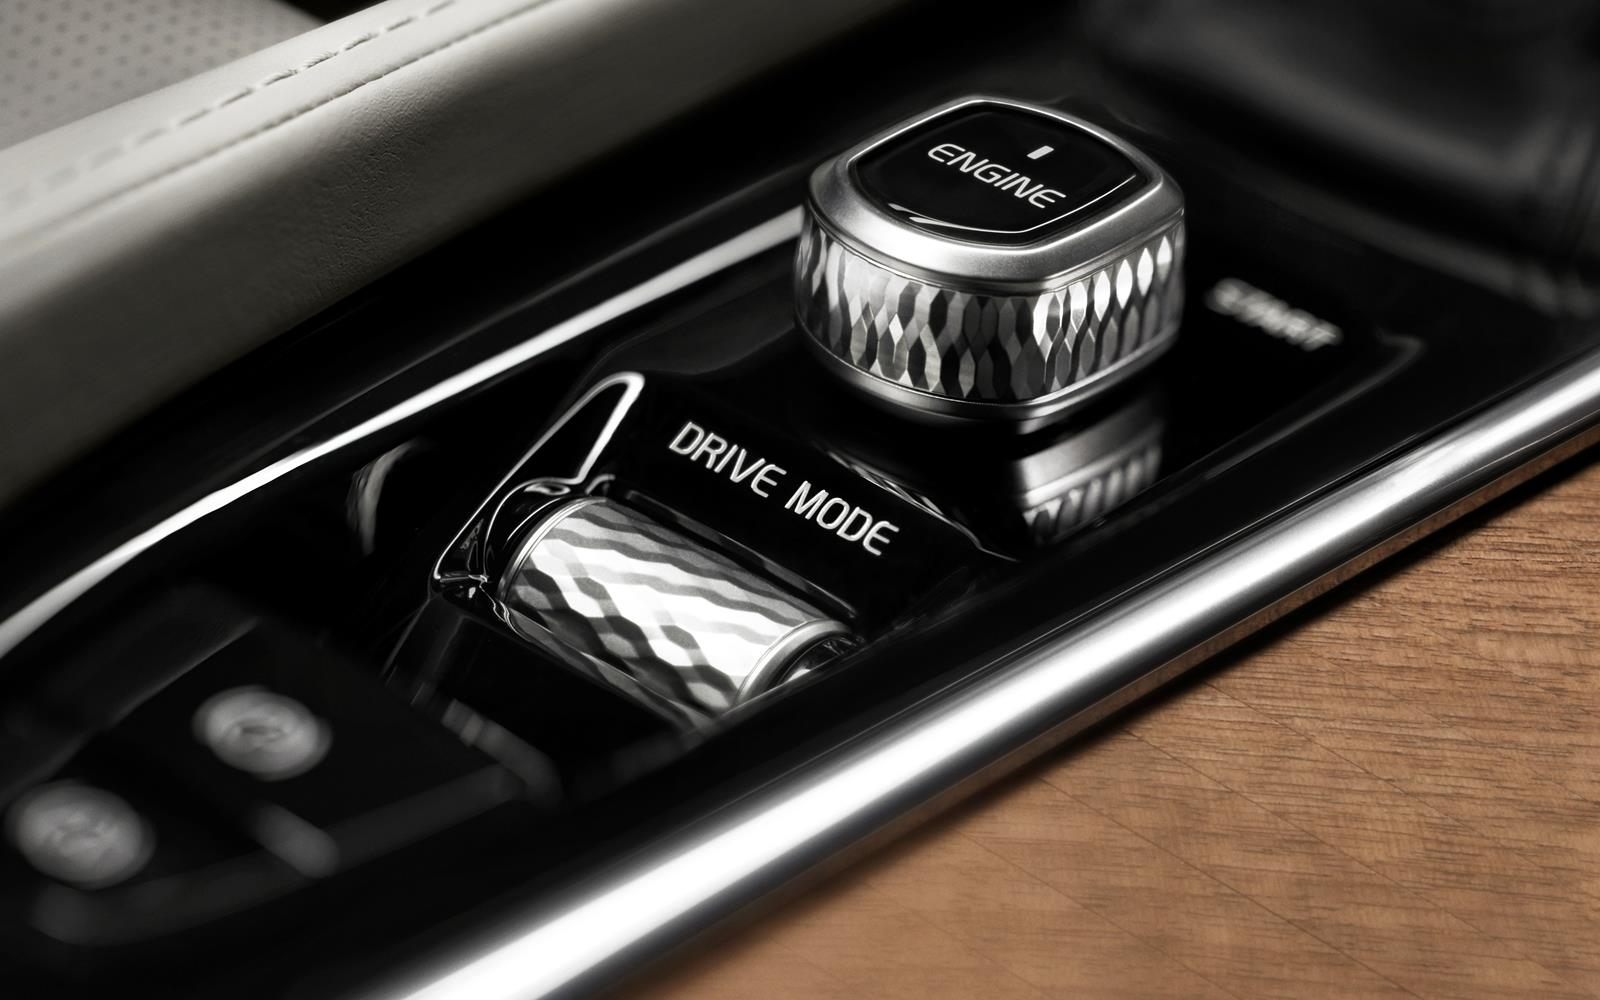 Volvo Xc90 Interior 2014 Start Button Detail